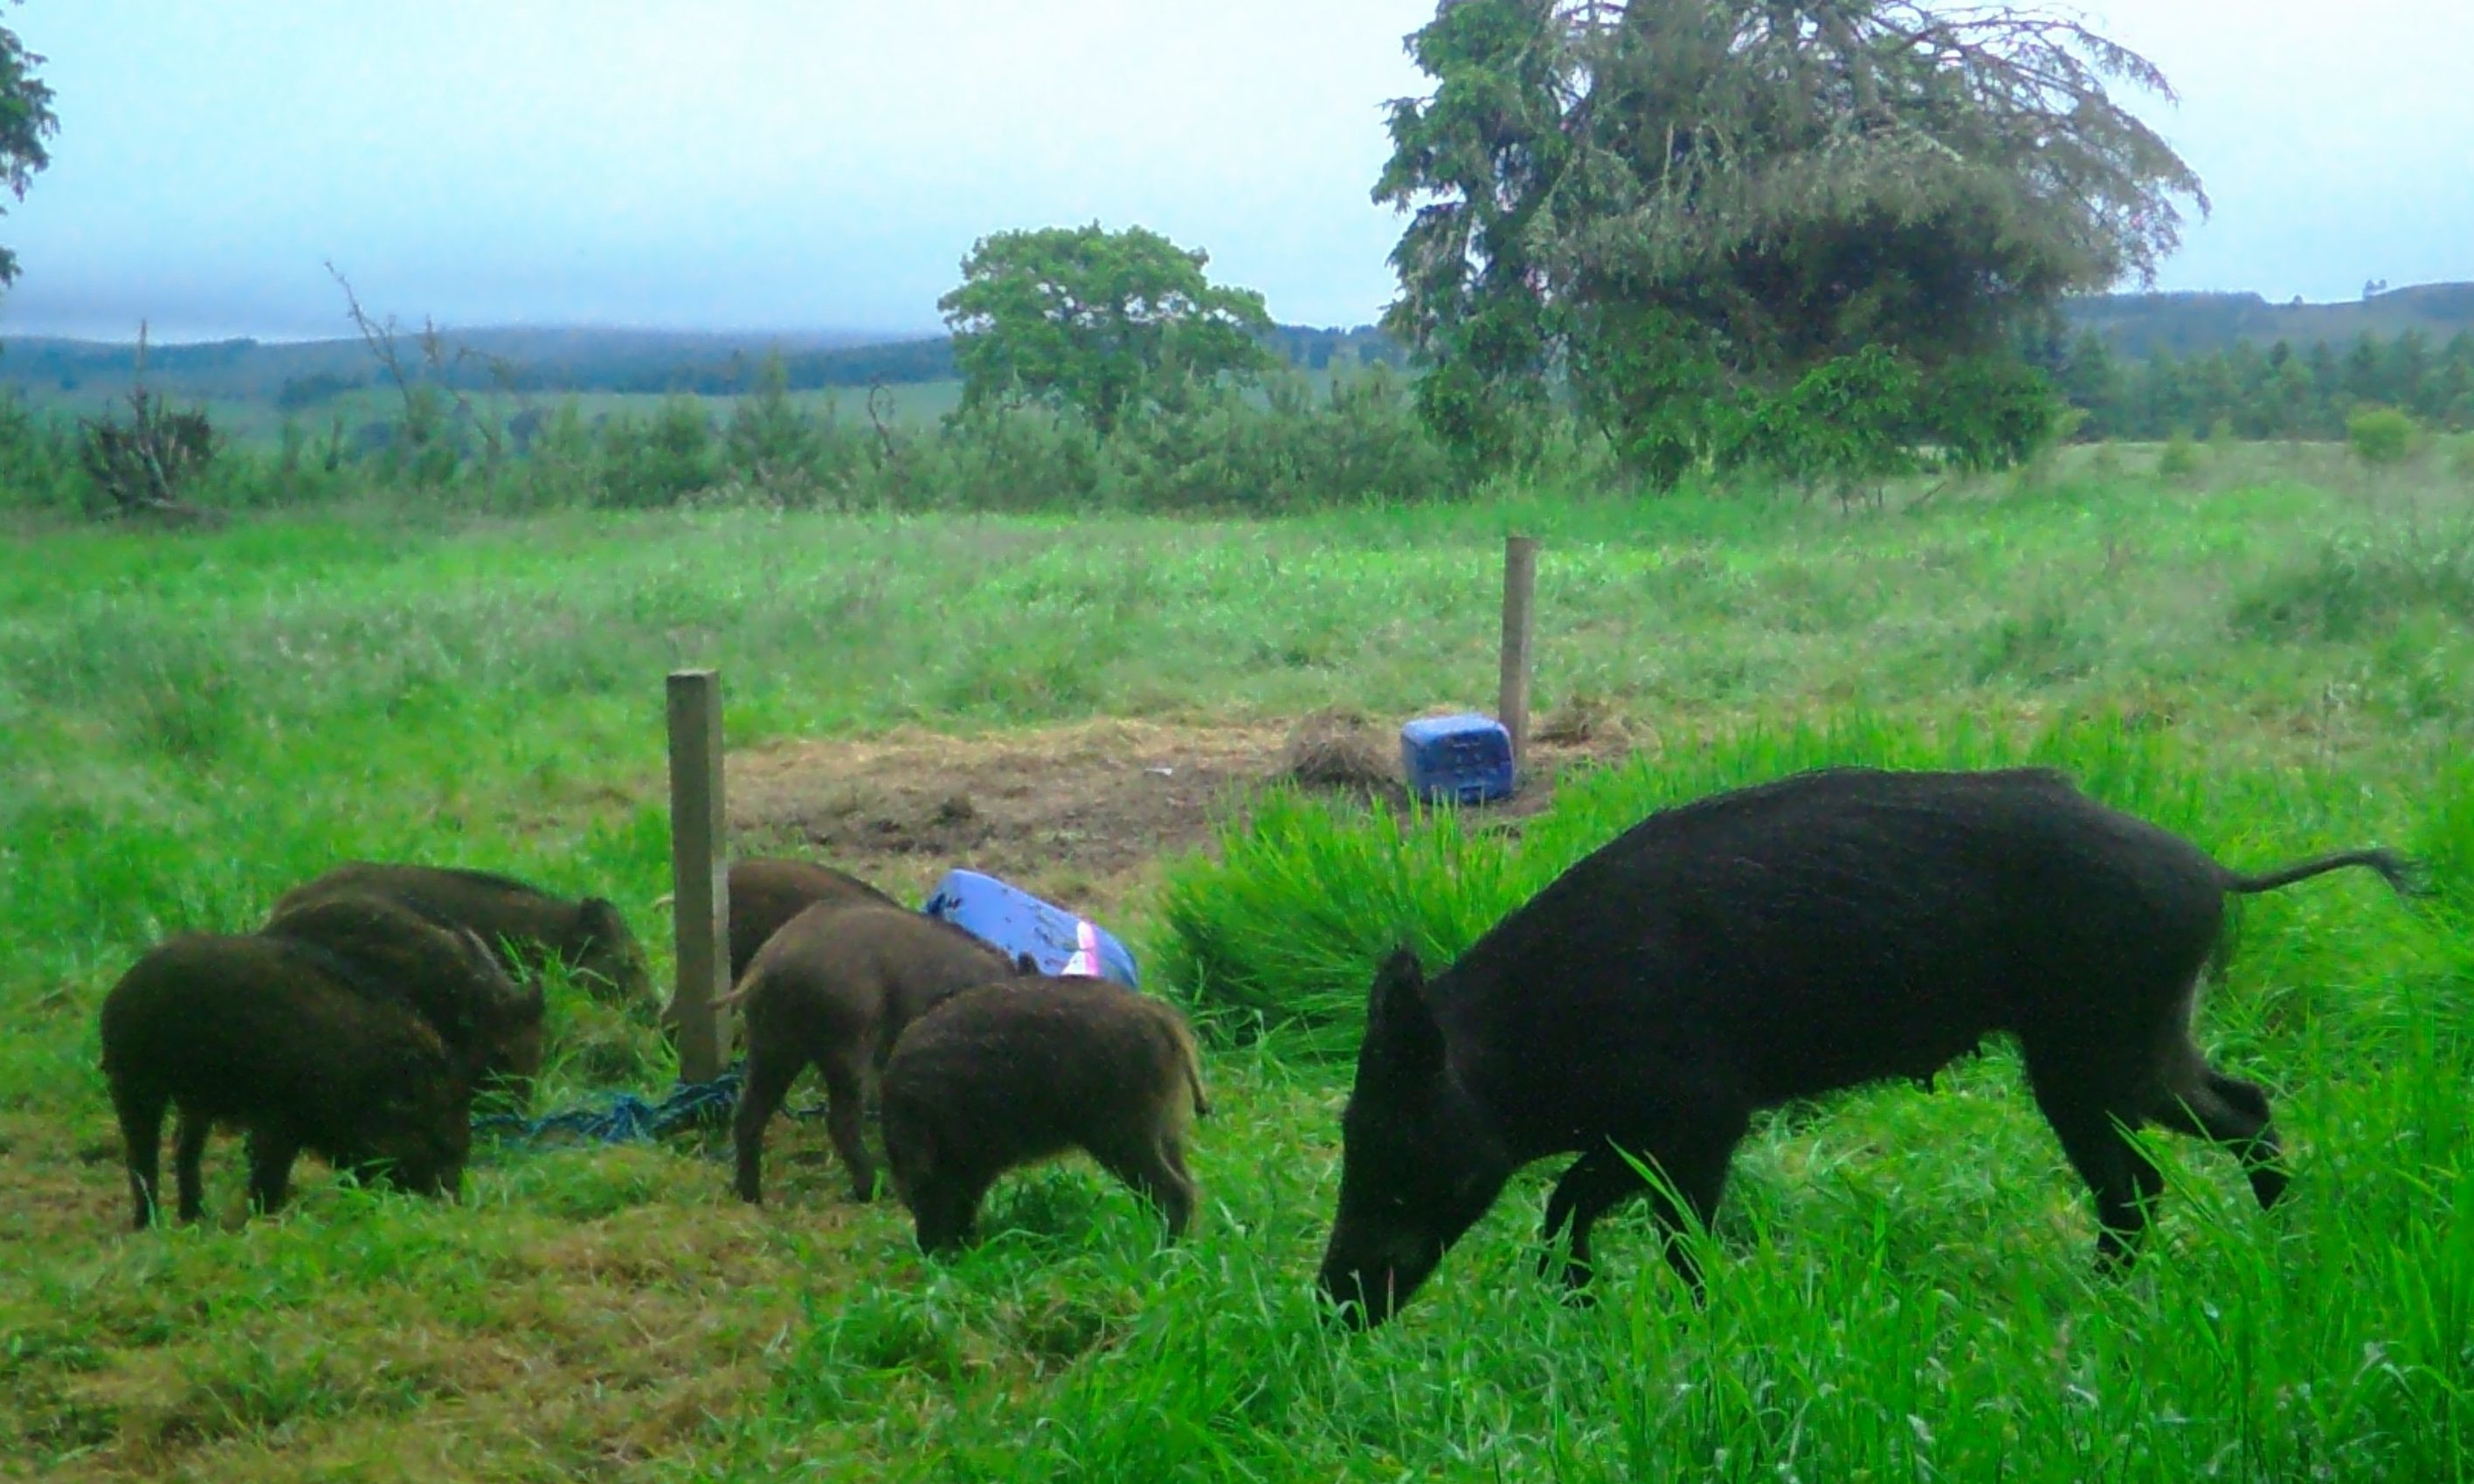 Images of feral boar taken by camera traps in Alyth.